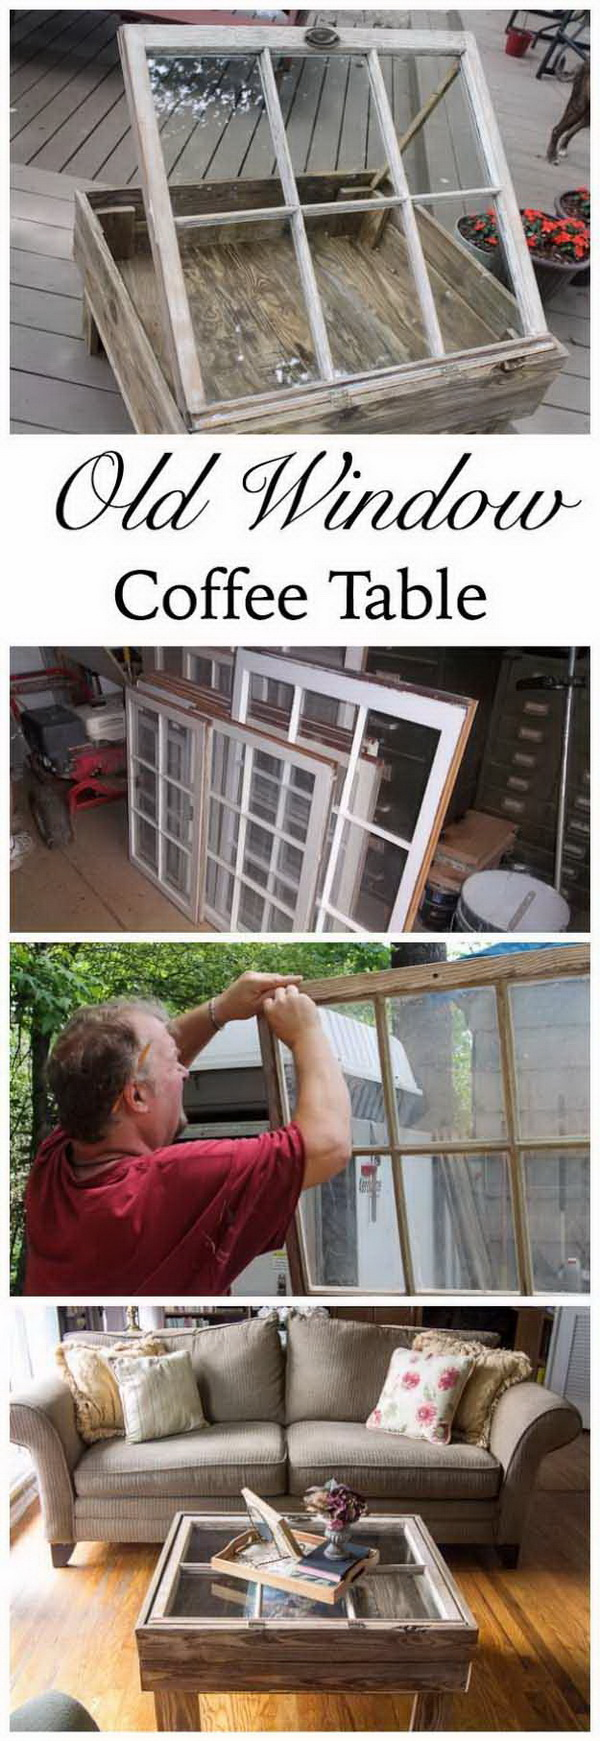 Old Window Coffee Table. Make this coffee table out of an old window. It is beautiful, and quick, easy to make with minimal wood working skills.